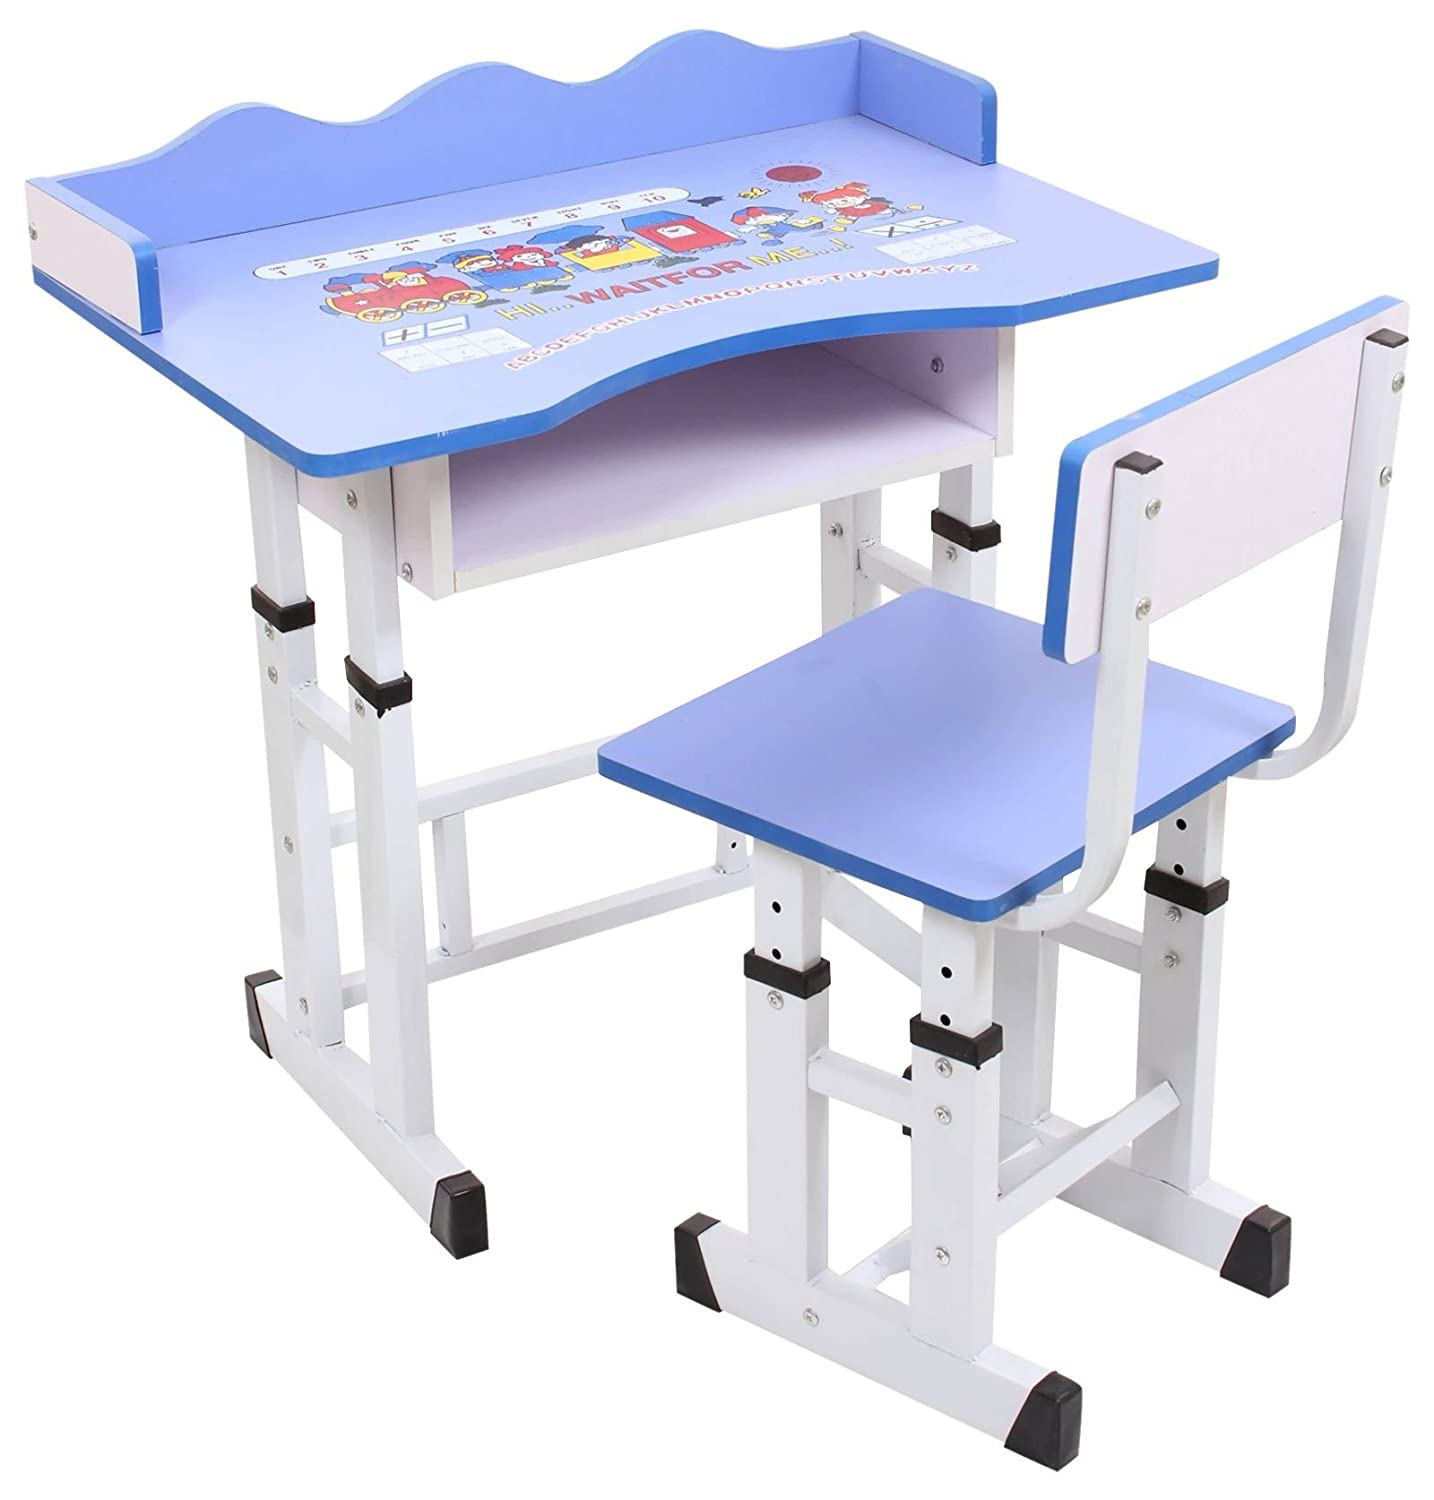 Buy PANDA STYLISH MDF IMPORTED KIDS STUDY TABLE WITH ADJUSTABLE HEIGHT FOR  TABLE AND CHAIR Online At Low Prices In India   Amazon.in